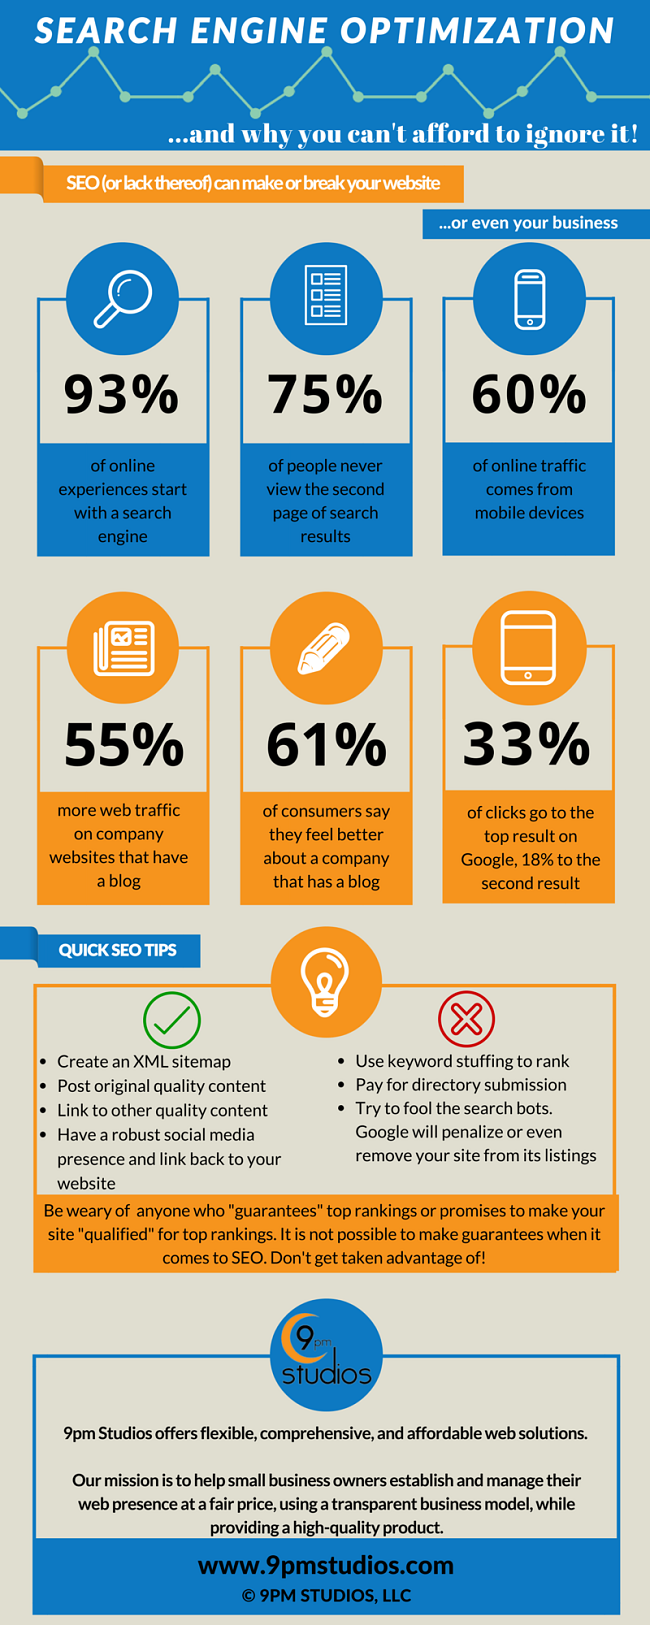 SEO statistics and tips infographic